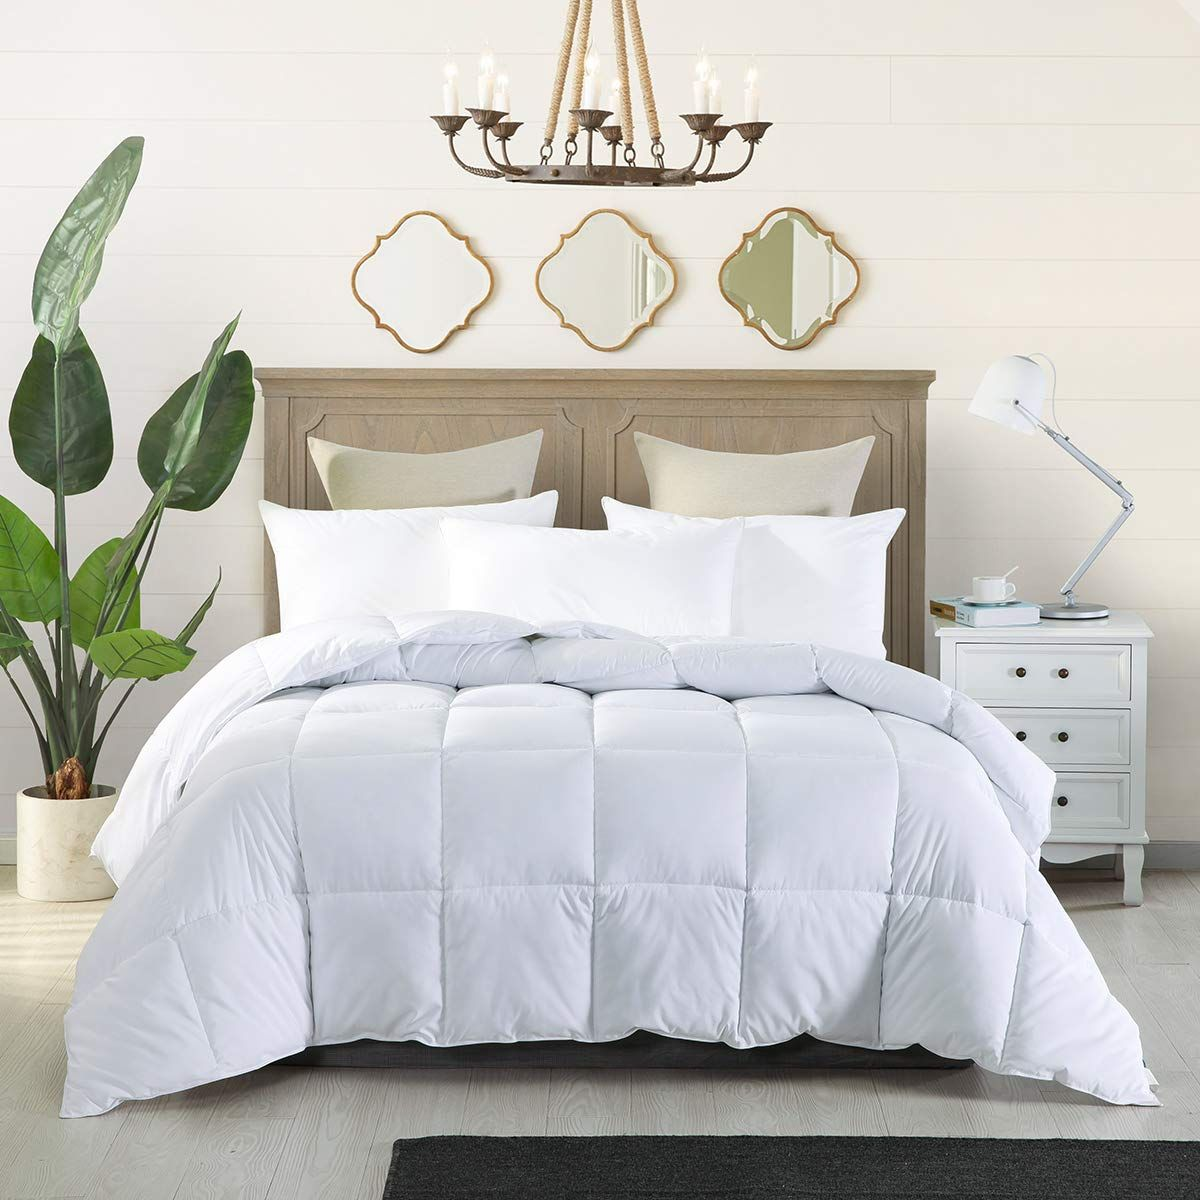 Dreamland Bedding Luxury Collection Hotel Style Allergy Free Super